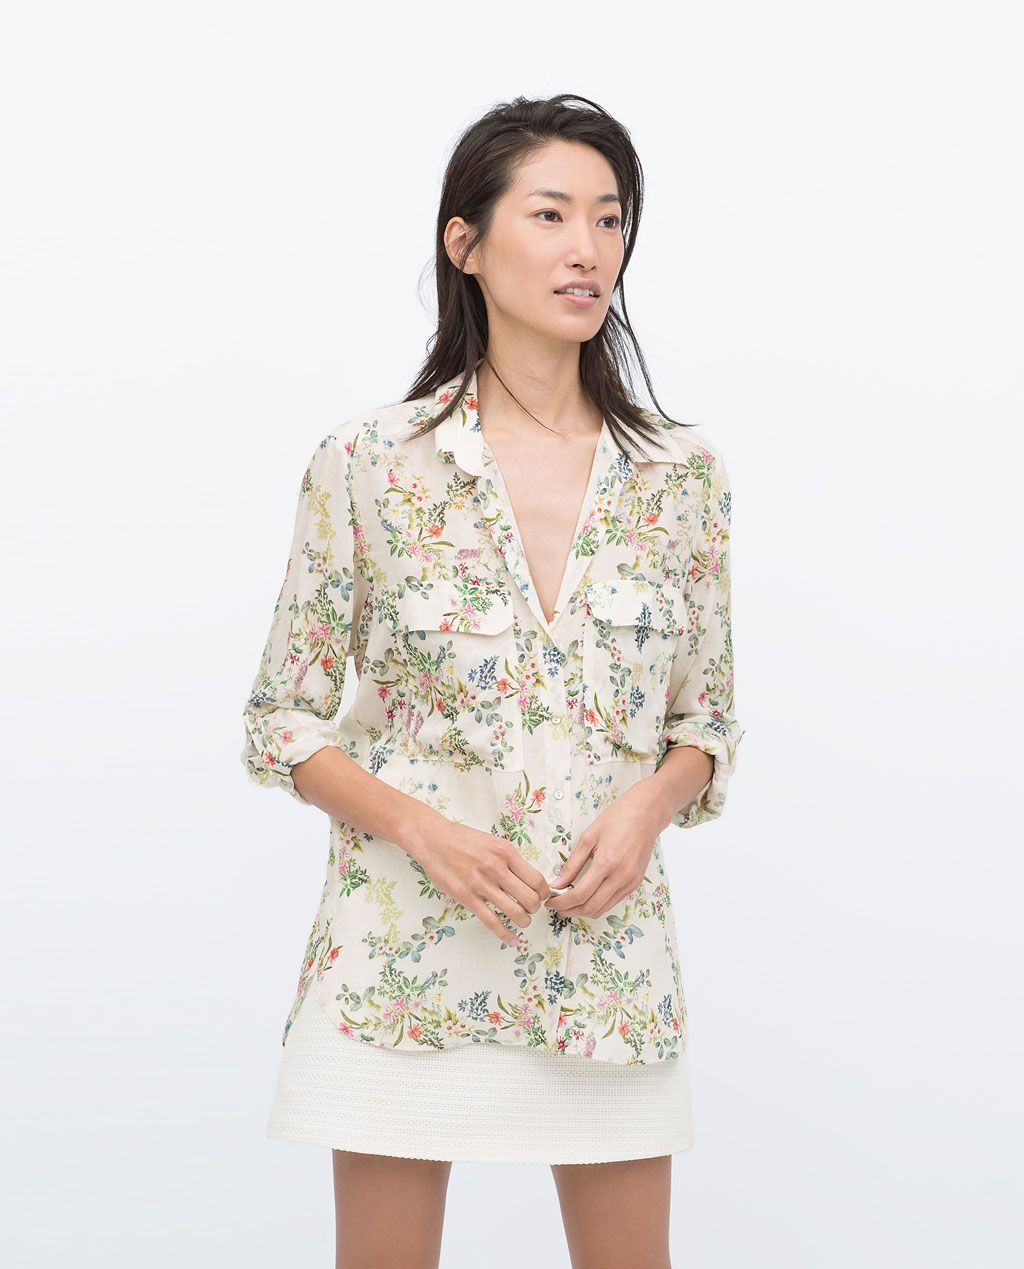 3c78a0d0 Image 1 of PRINTED BLOUSE WITH POCKETS from Zara | clothes and shoes ...